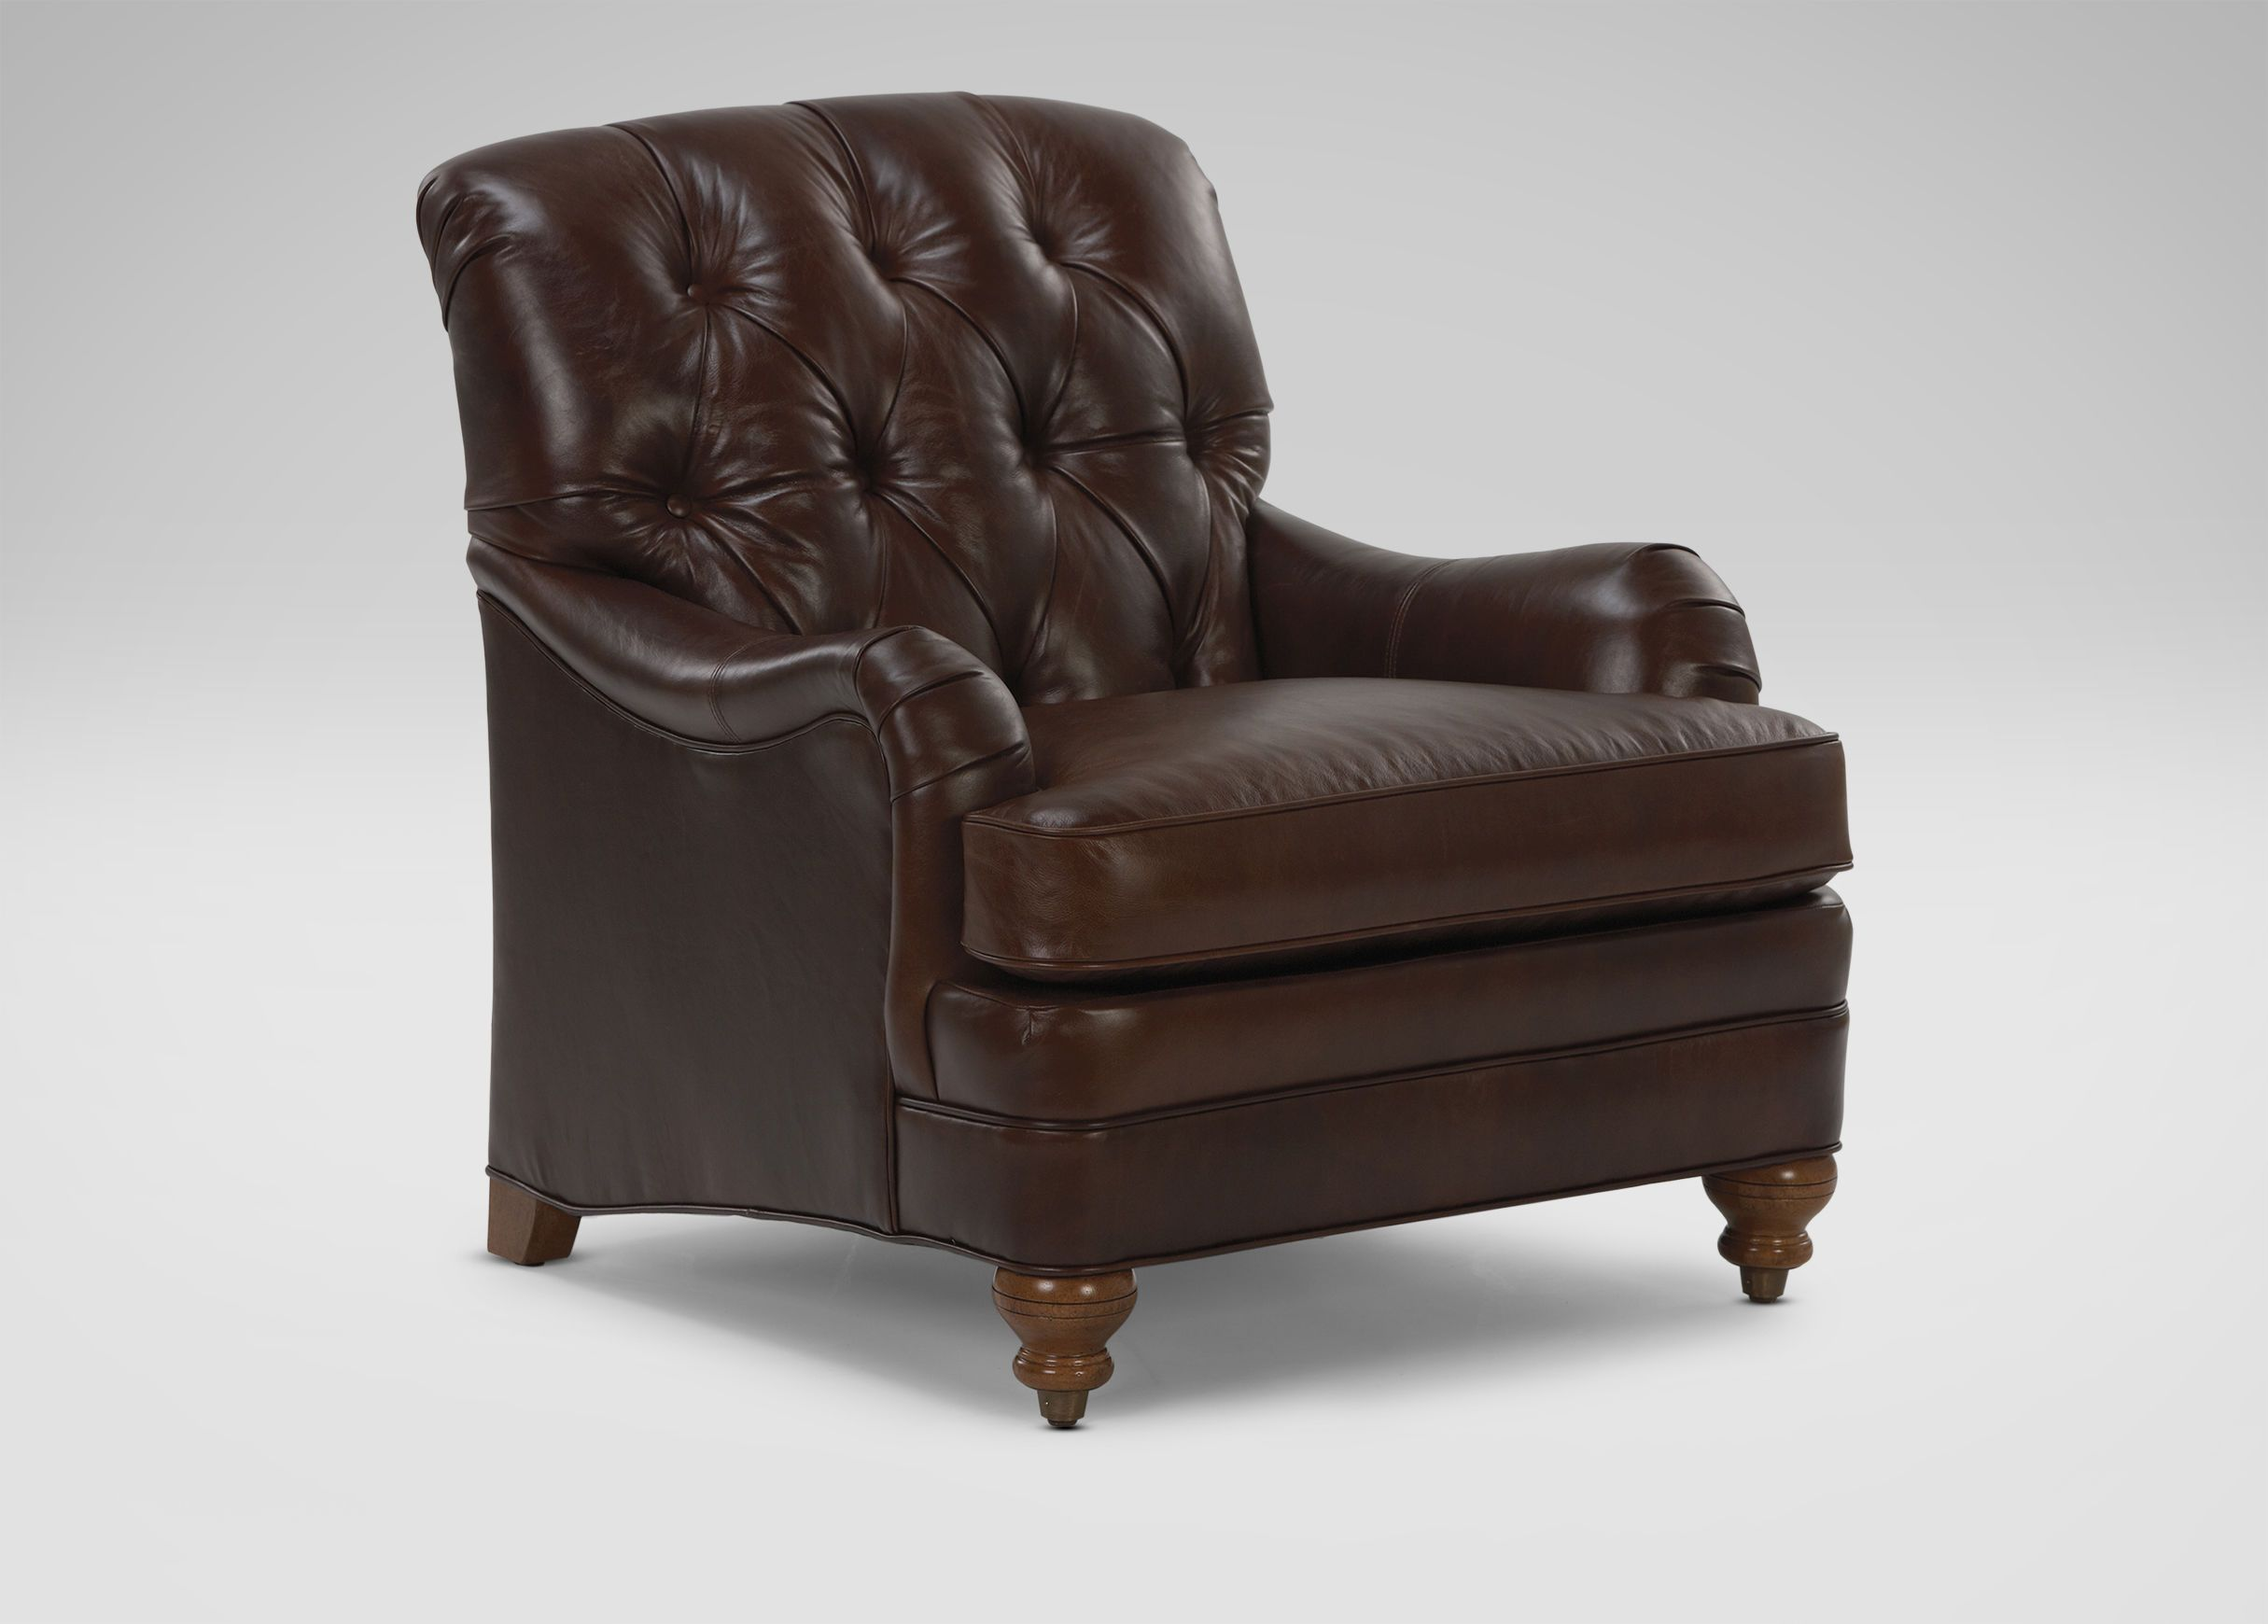 Mercer Tufted Leather Chair   Ethan Allen